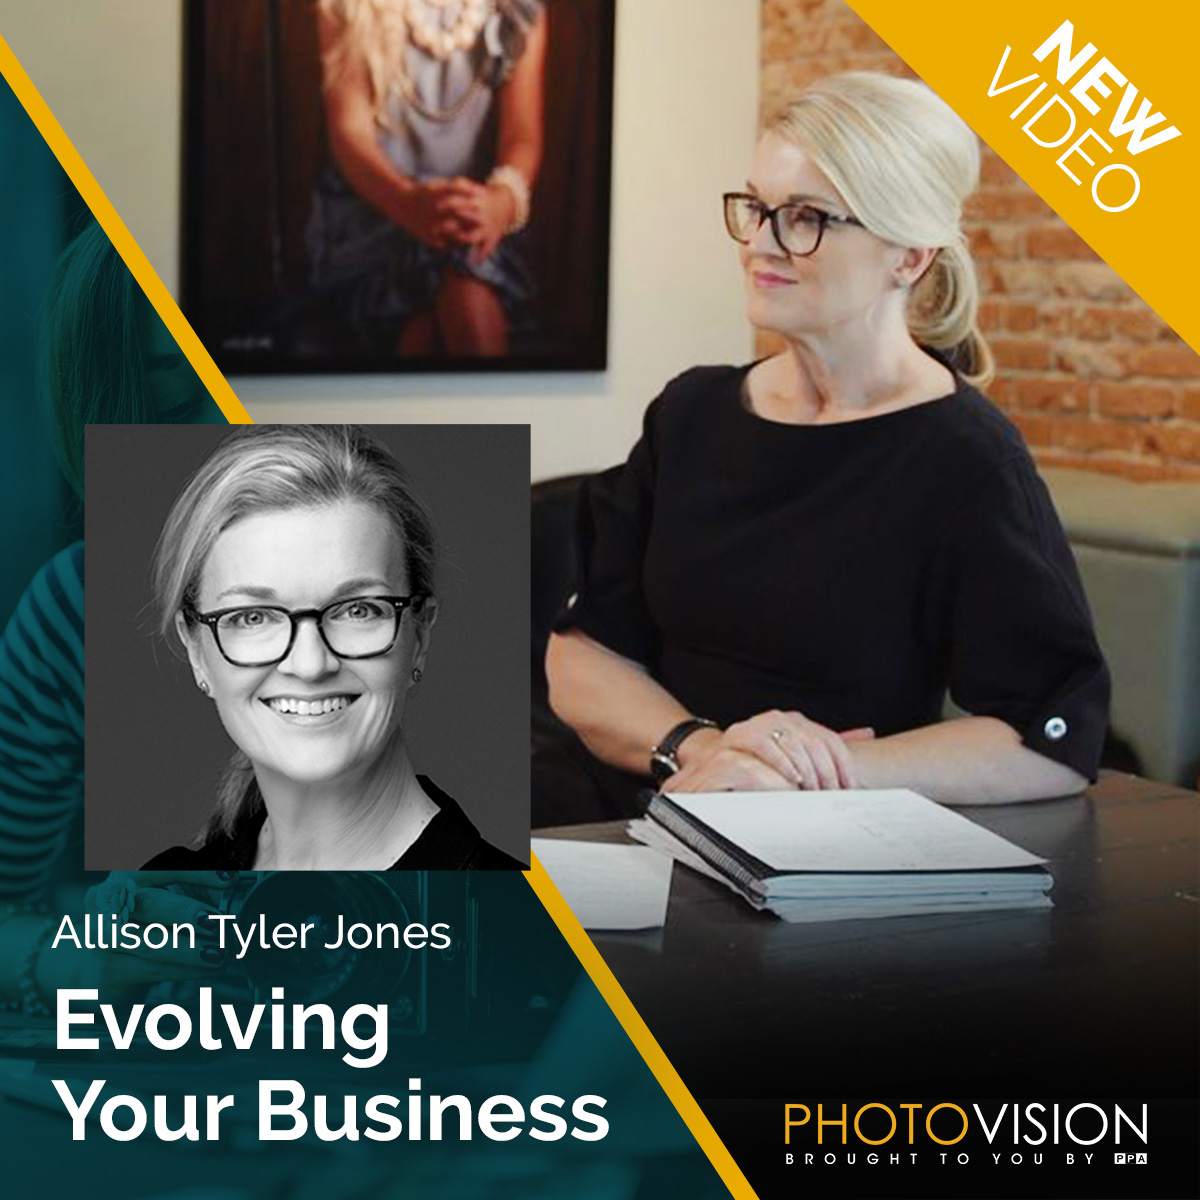 photovision, online learning, photography, business, evolve